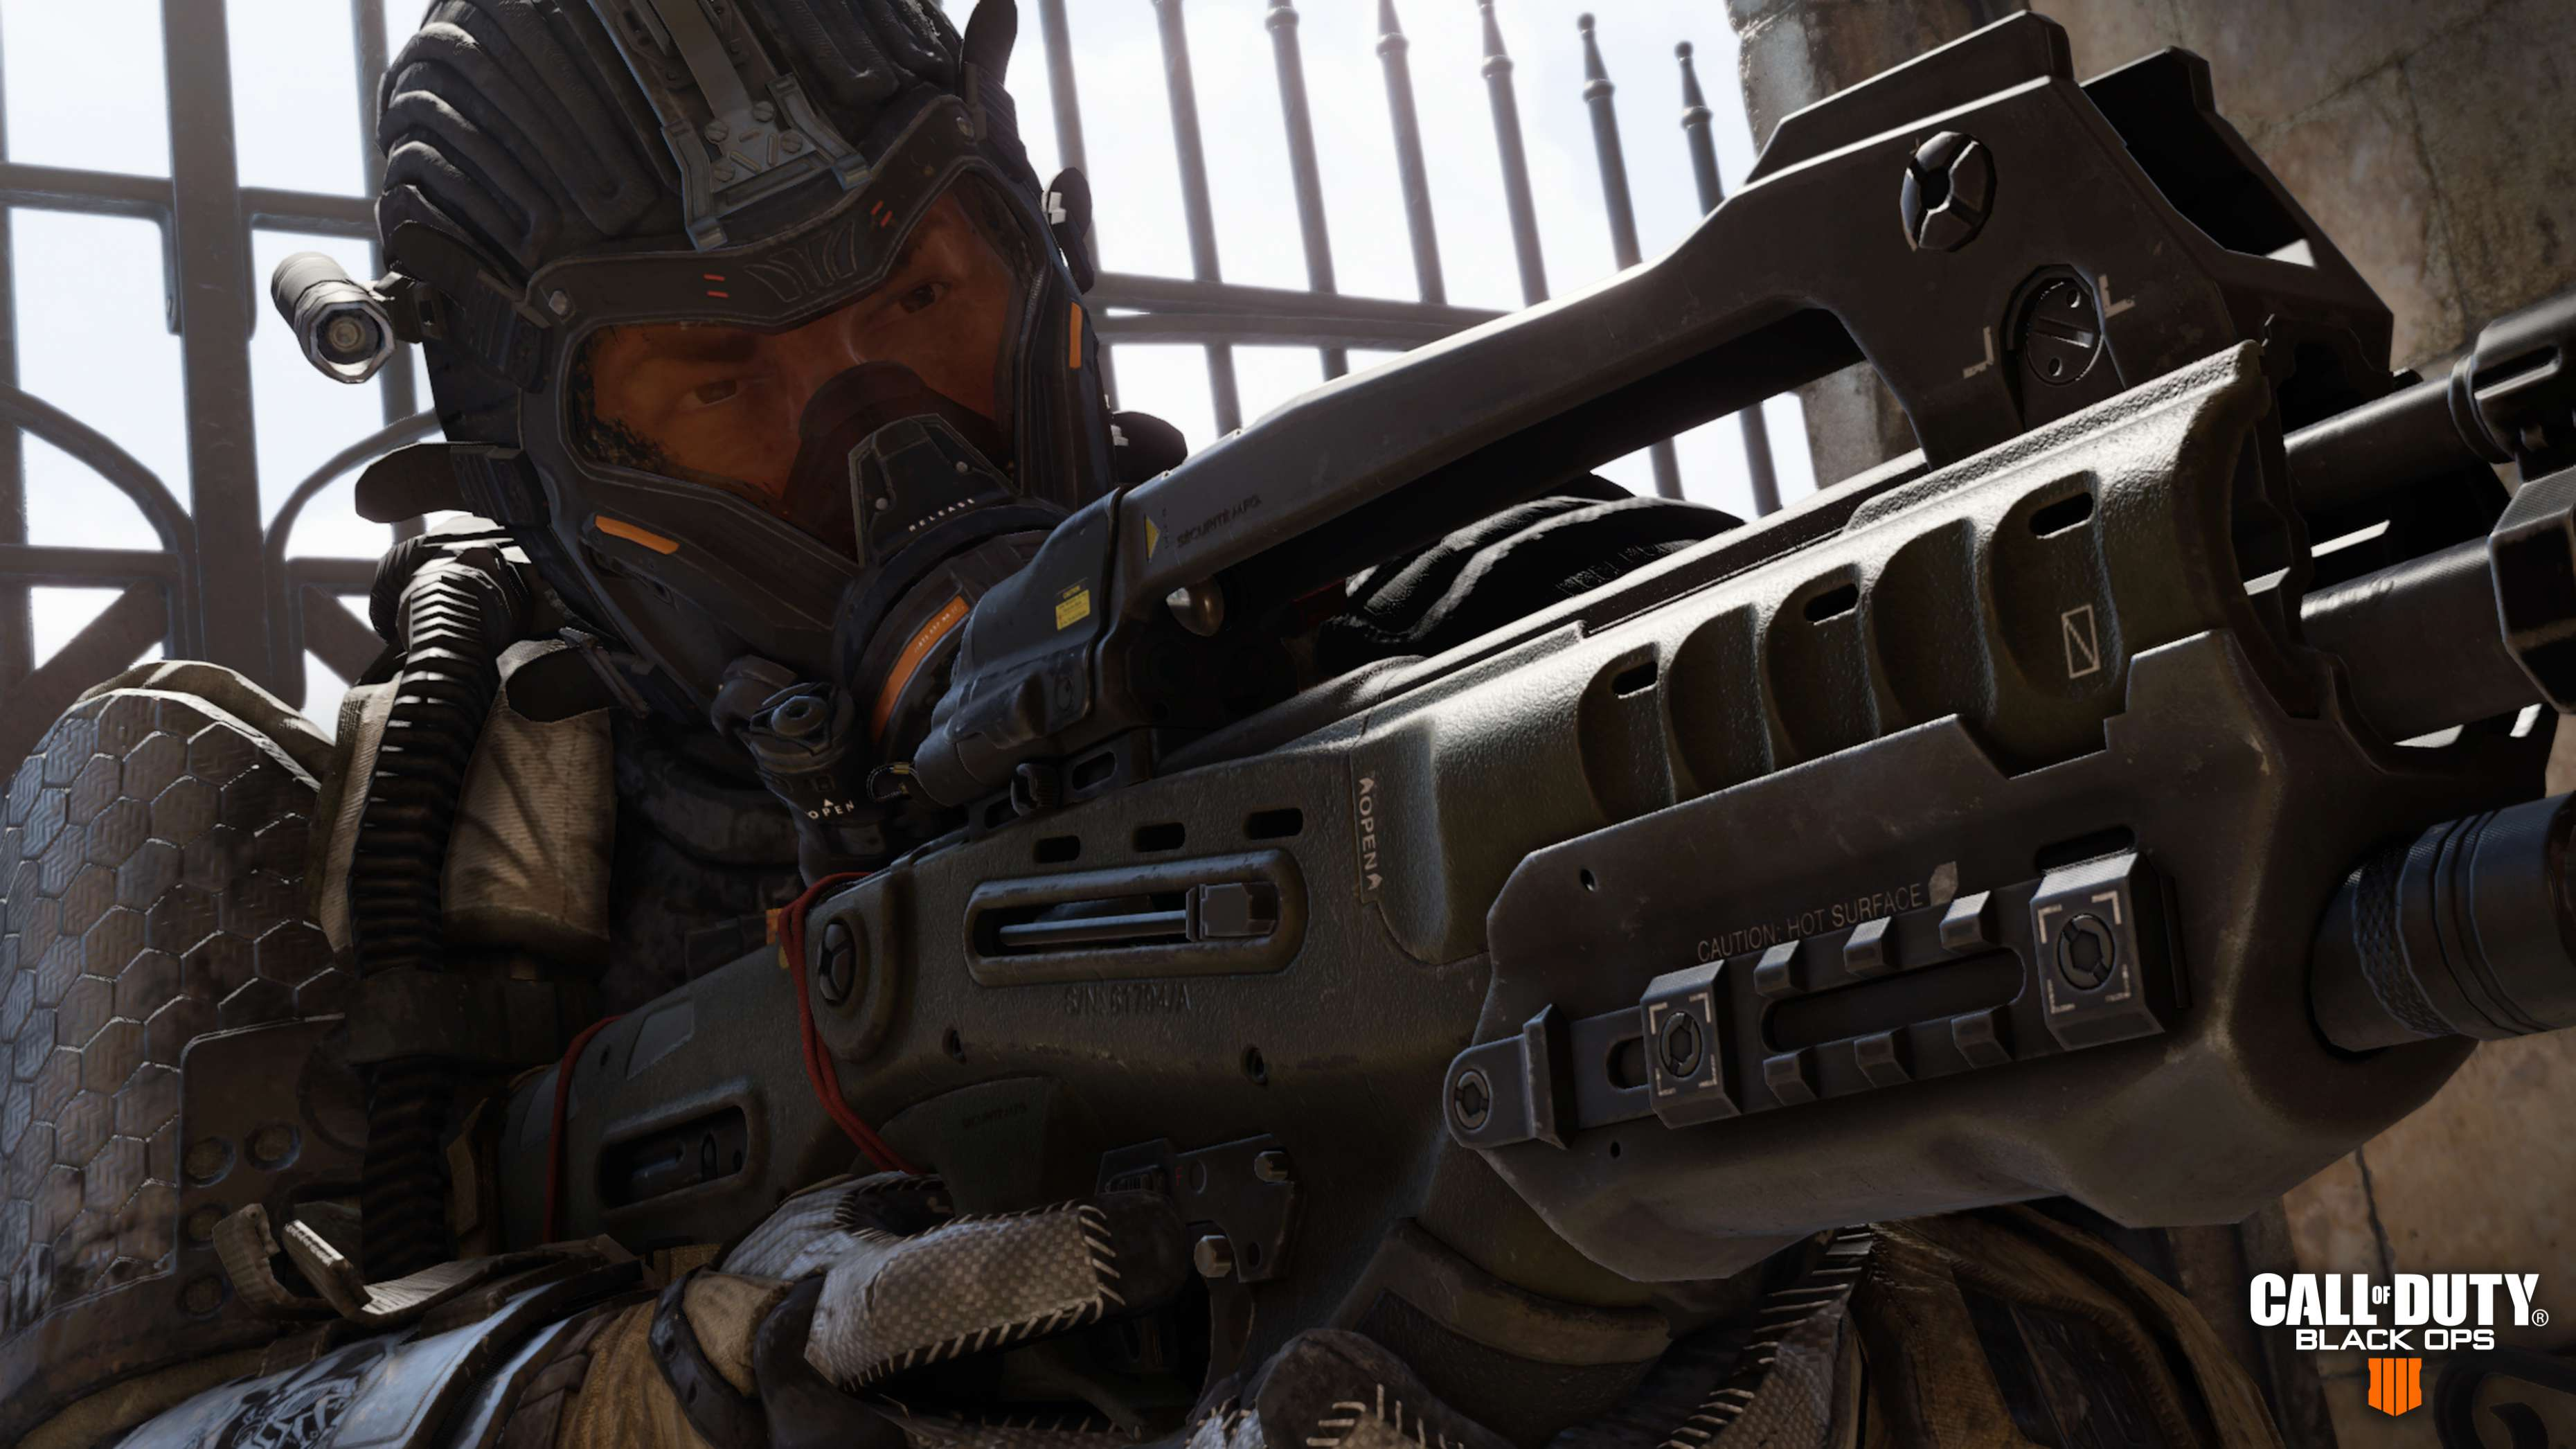 Call of Duty: Black Ops 4 #4